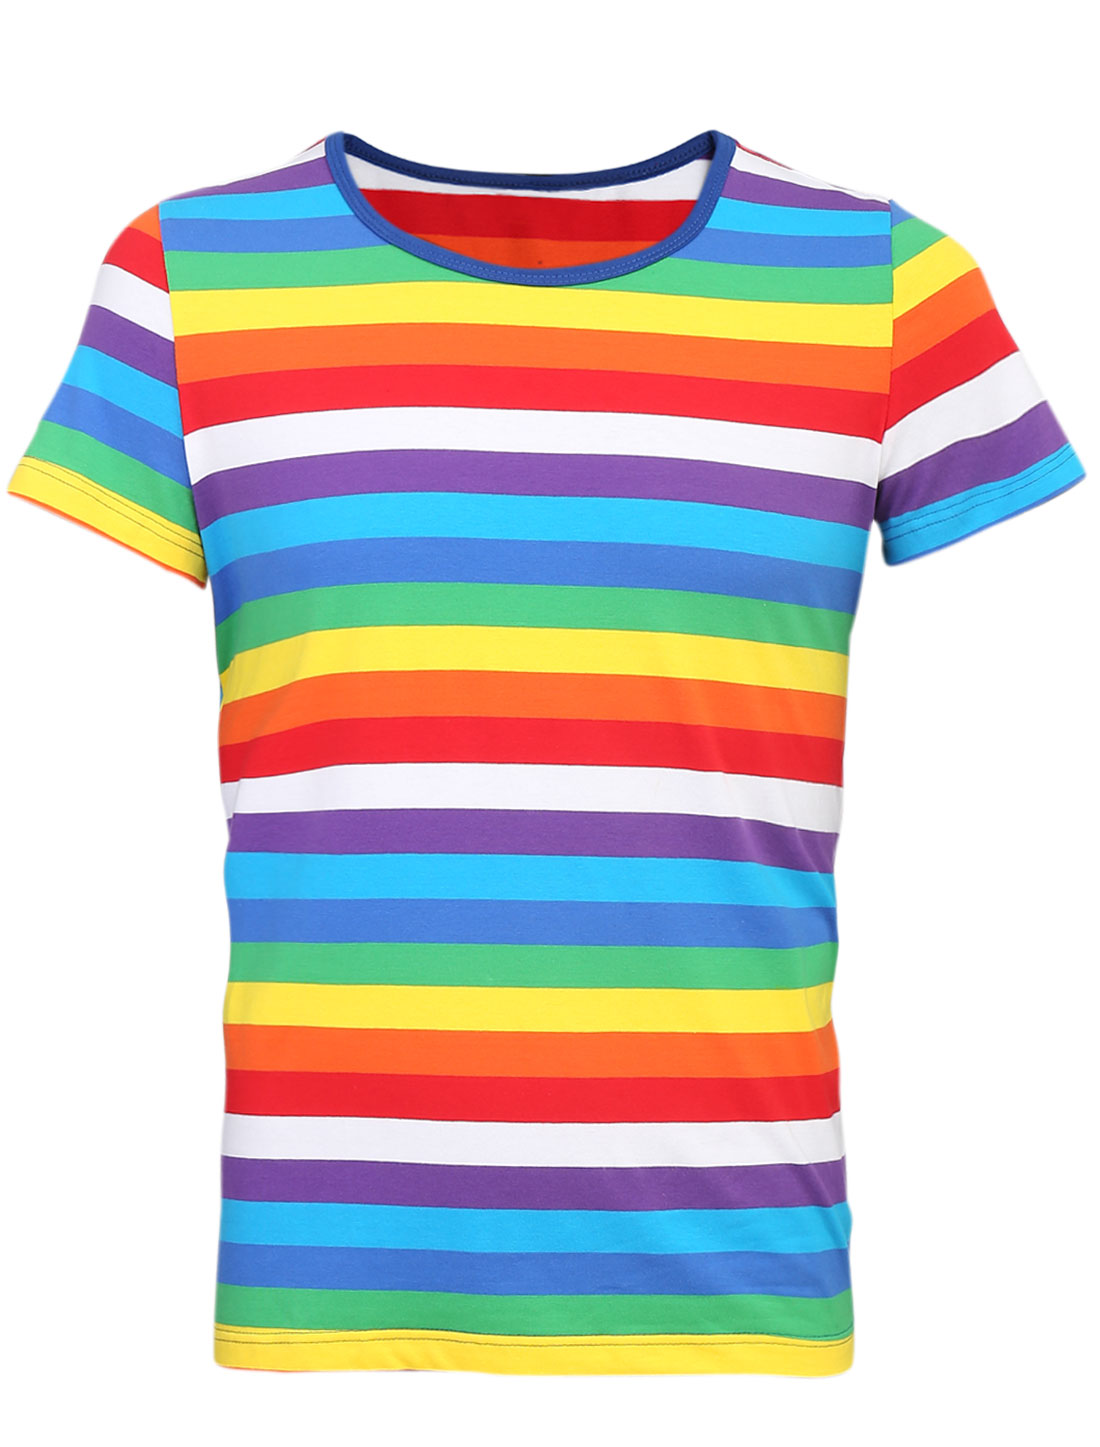 Men Personalized Short Sleeve Stripes Pullover Tee Multicolor M